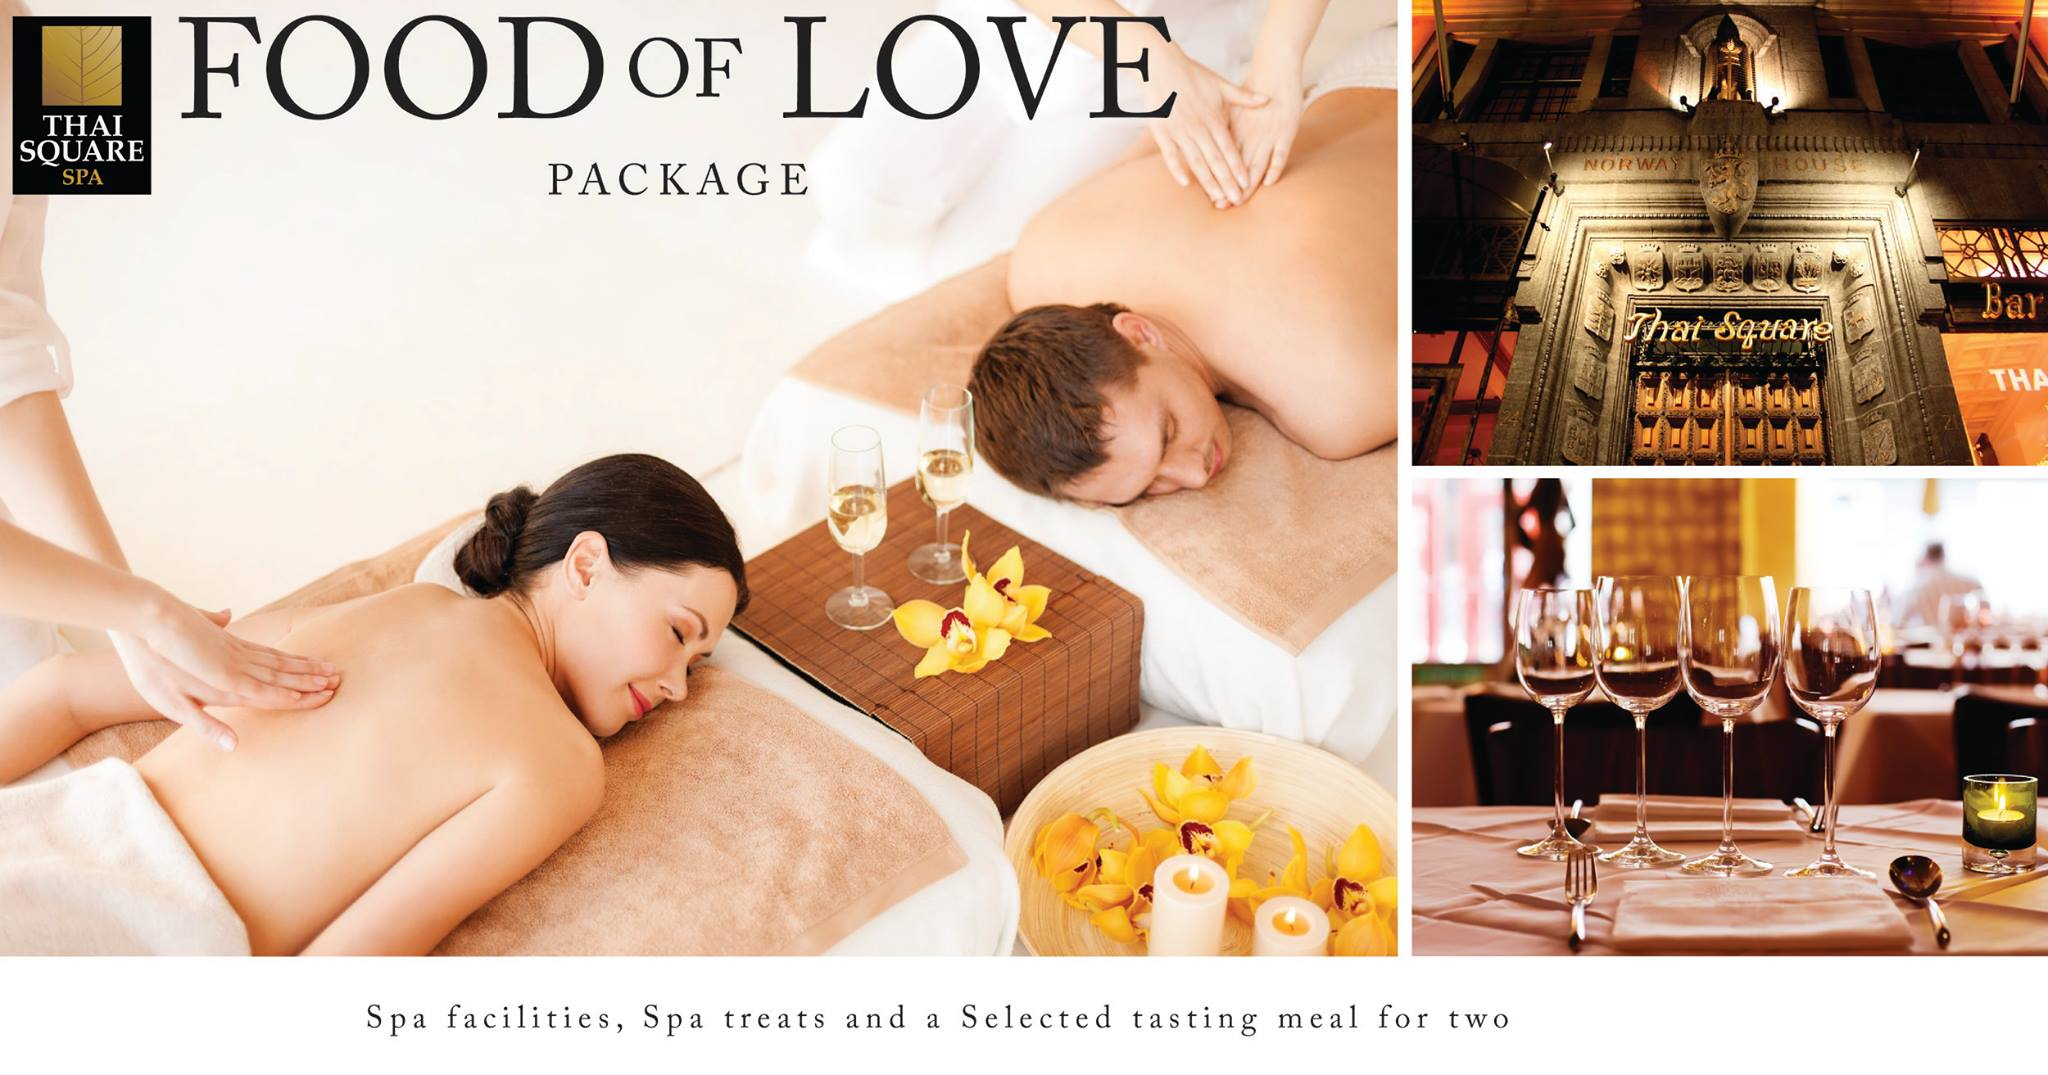 Thai Square Spa Food of Love Package